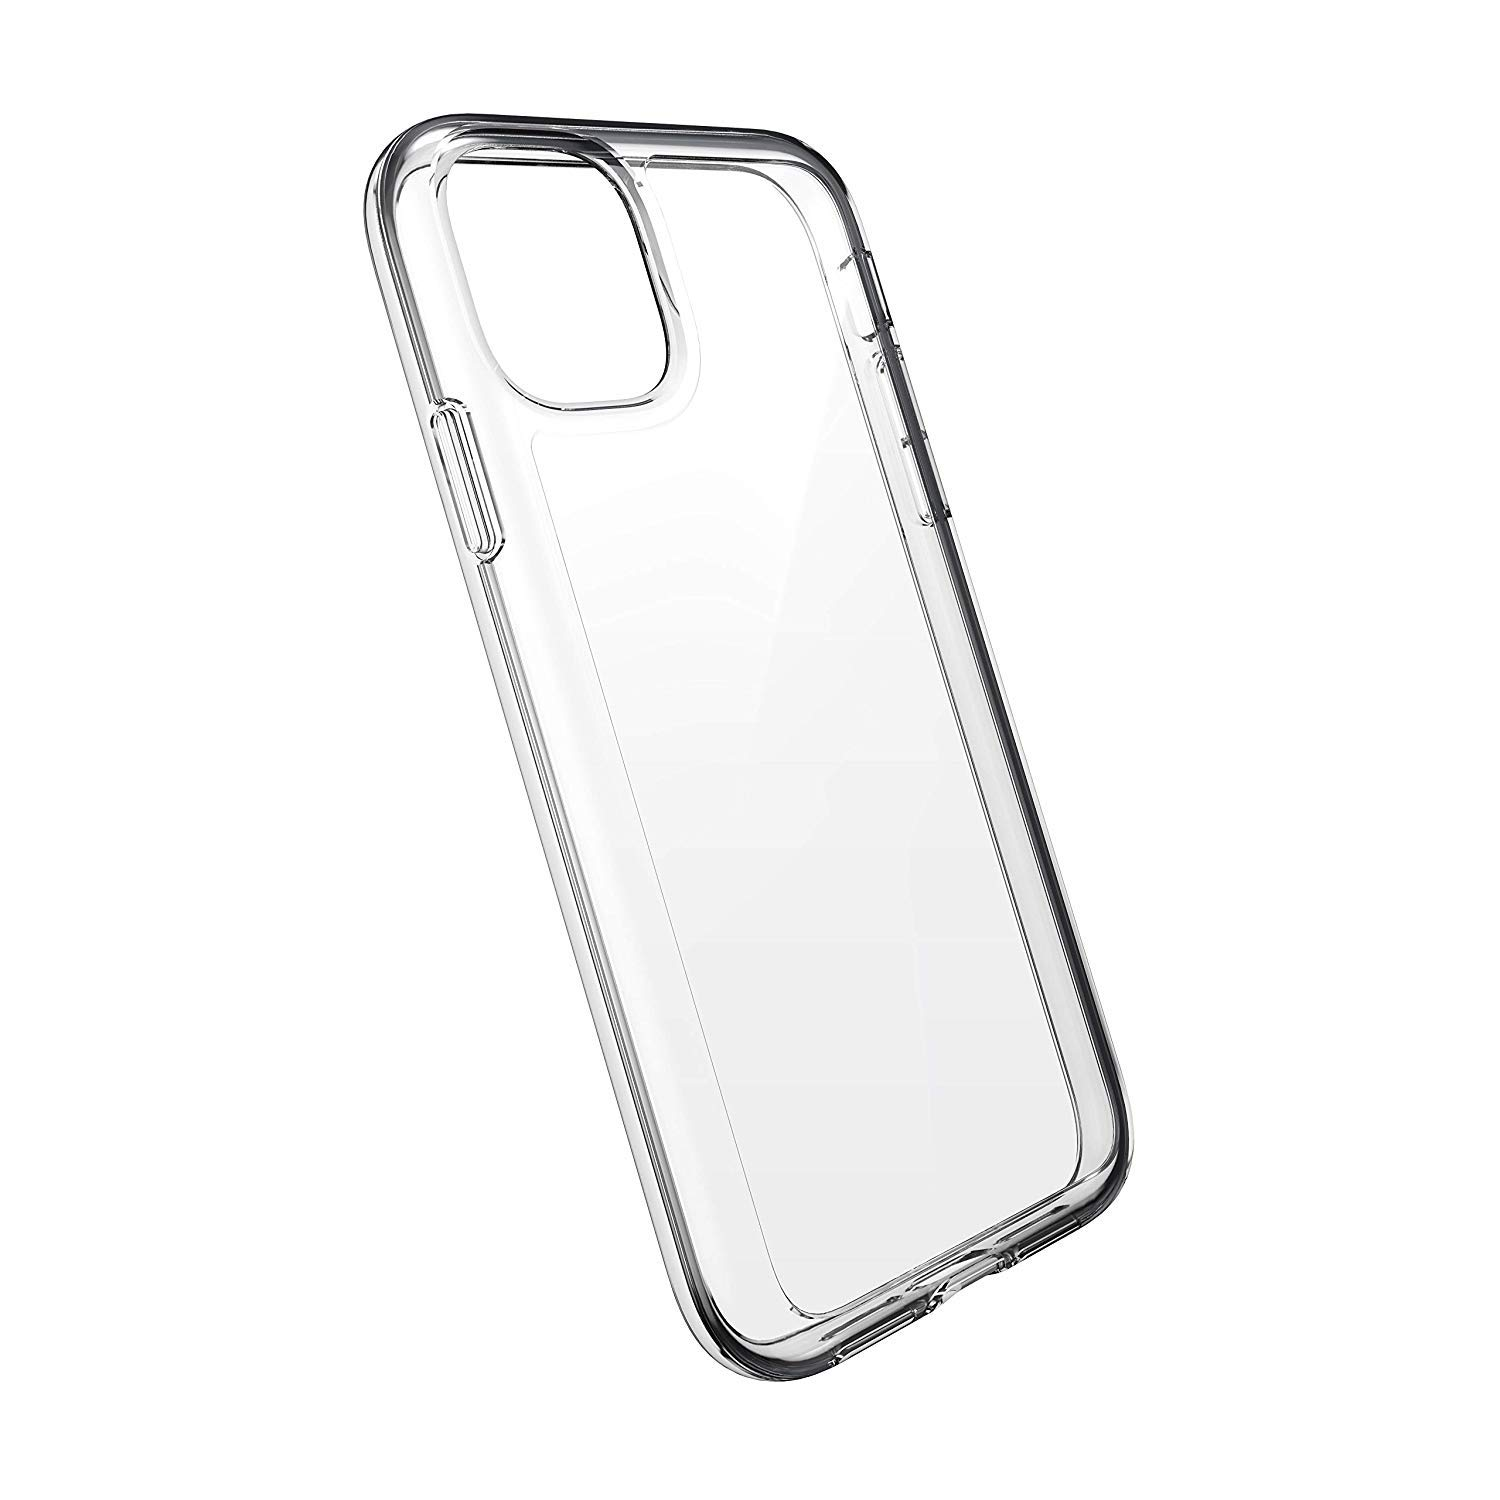 Speck's clear Gemshell case for the iPhone 11